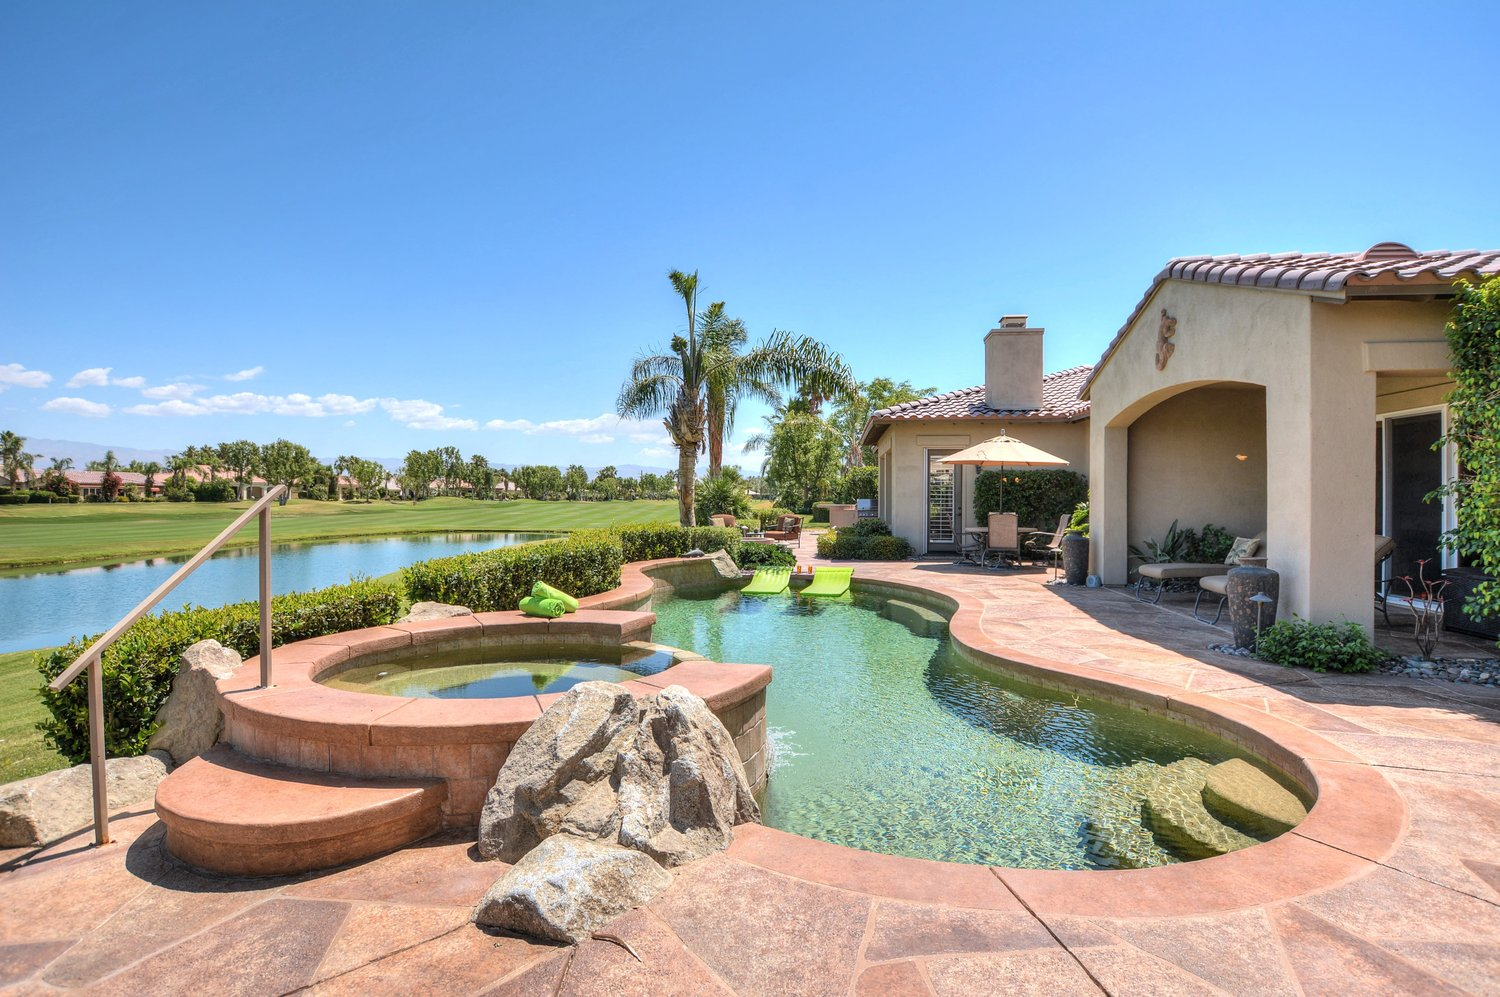 81250 Golf View Dr, La Quinta